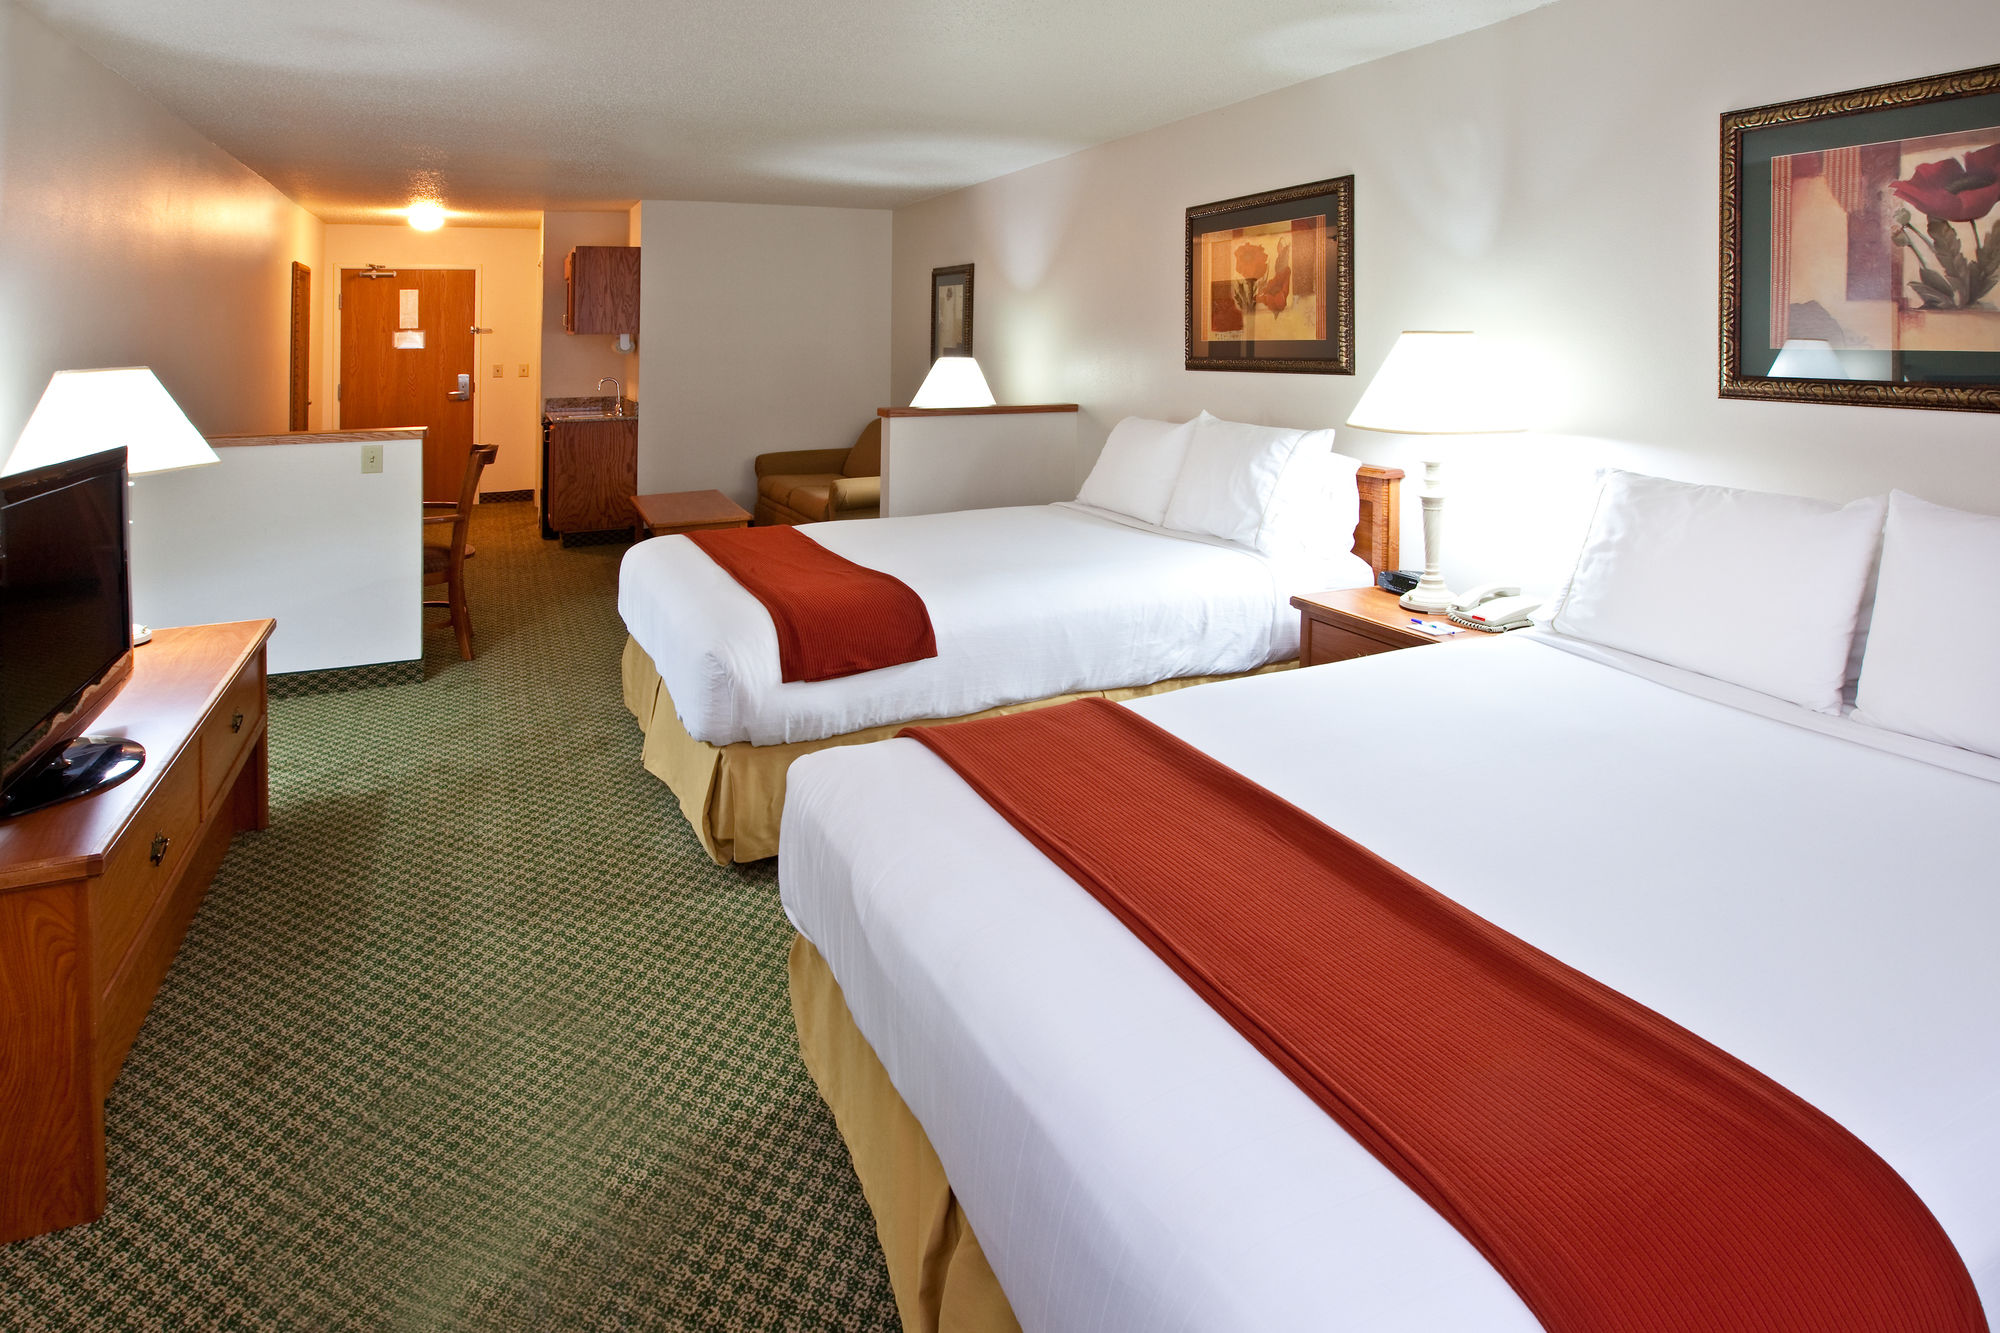 Holiday Inn Express Hotel & Suites in Logan, WV